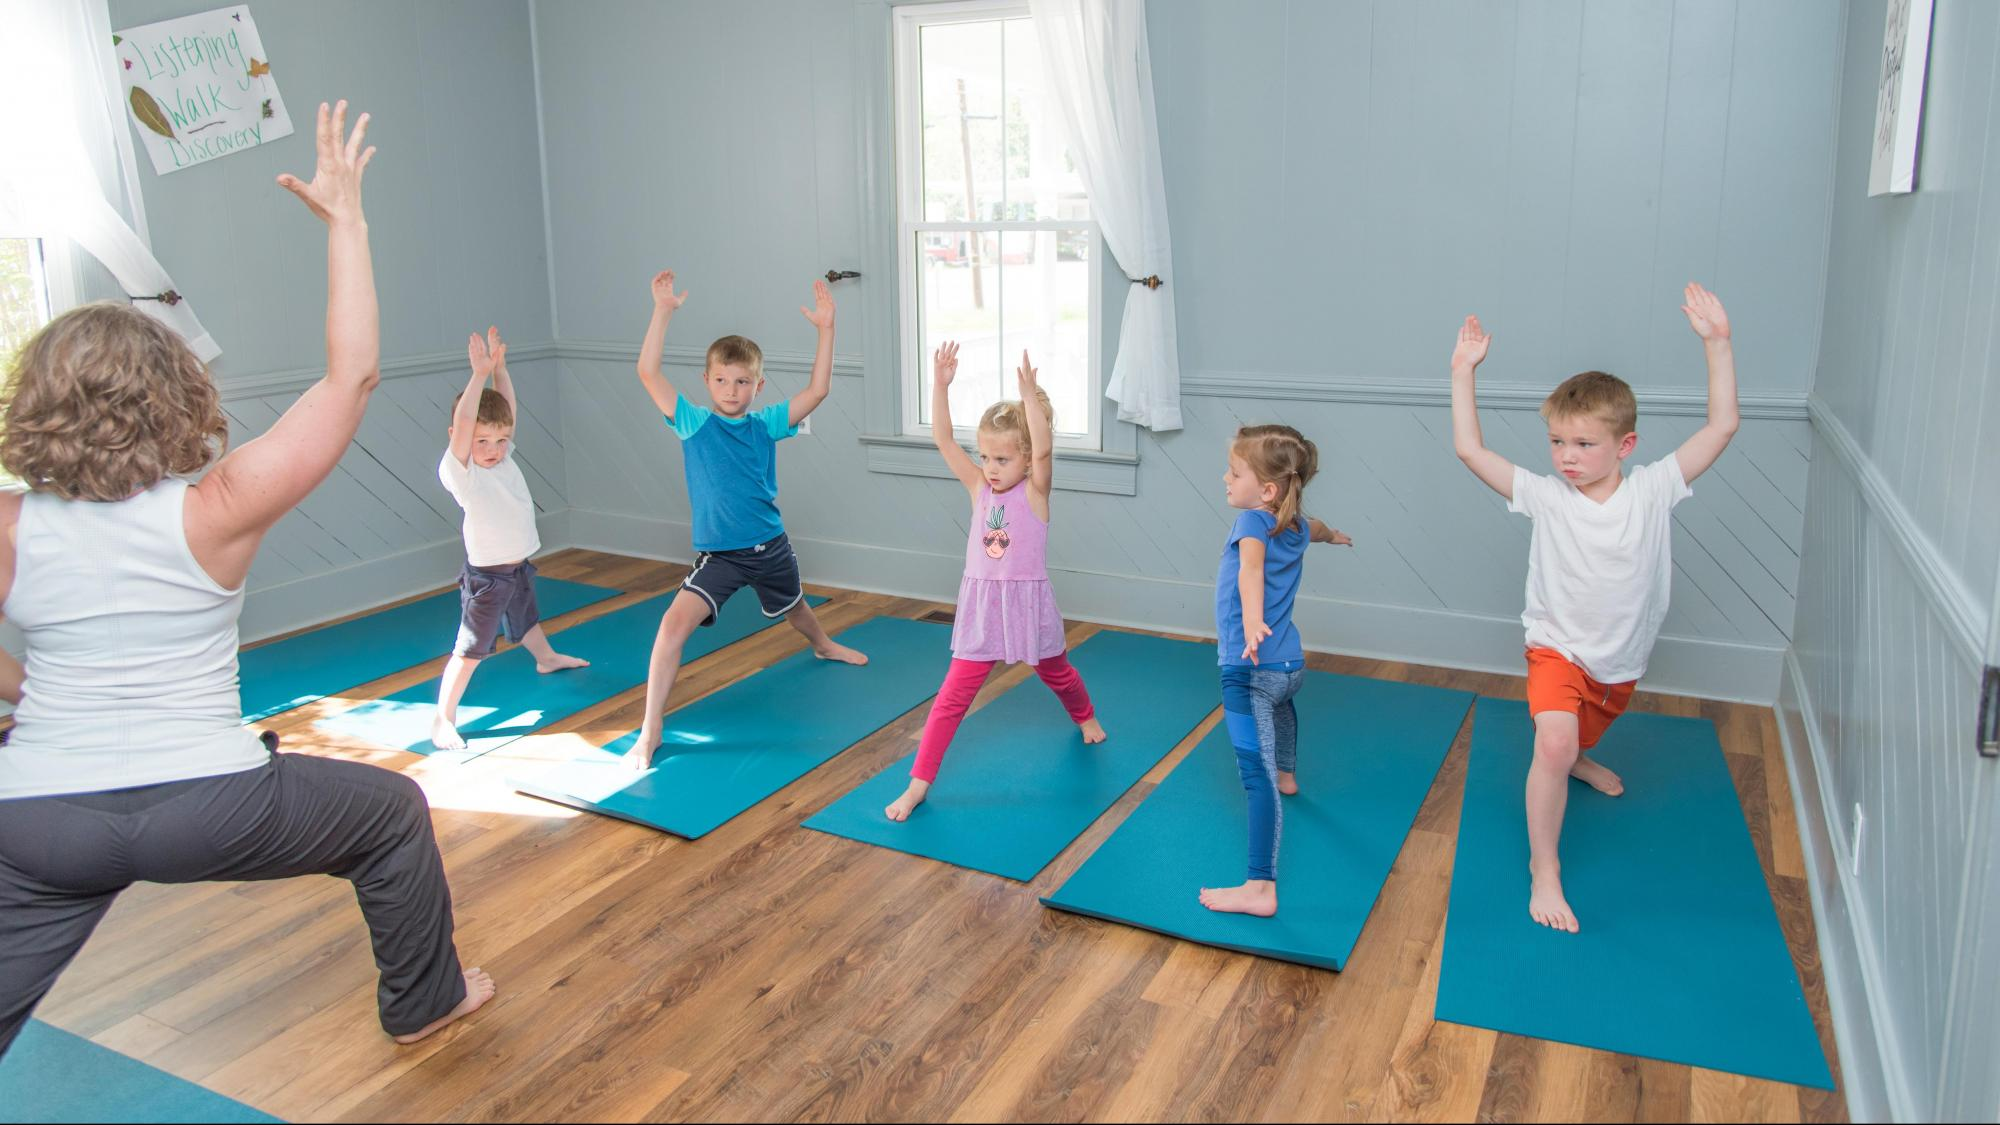 Growga Corepower Team Up For Yoga For Kids Adults Wral Com